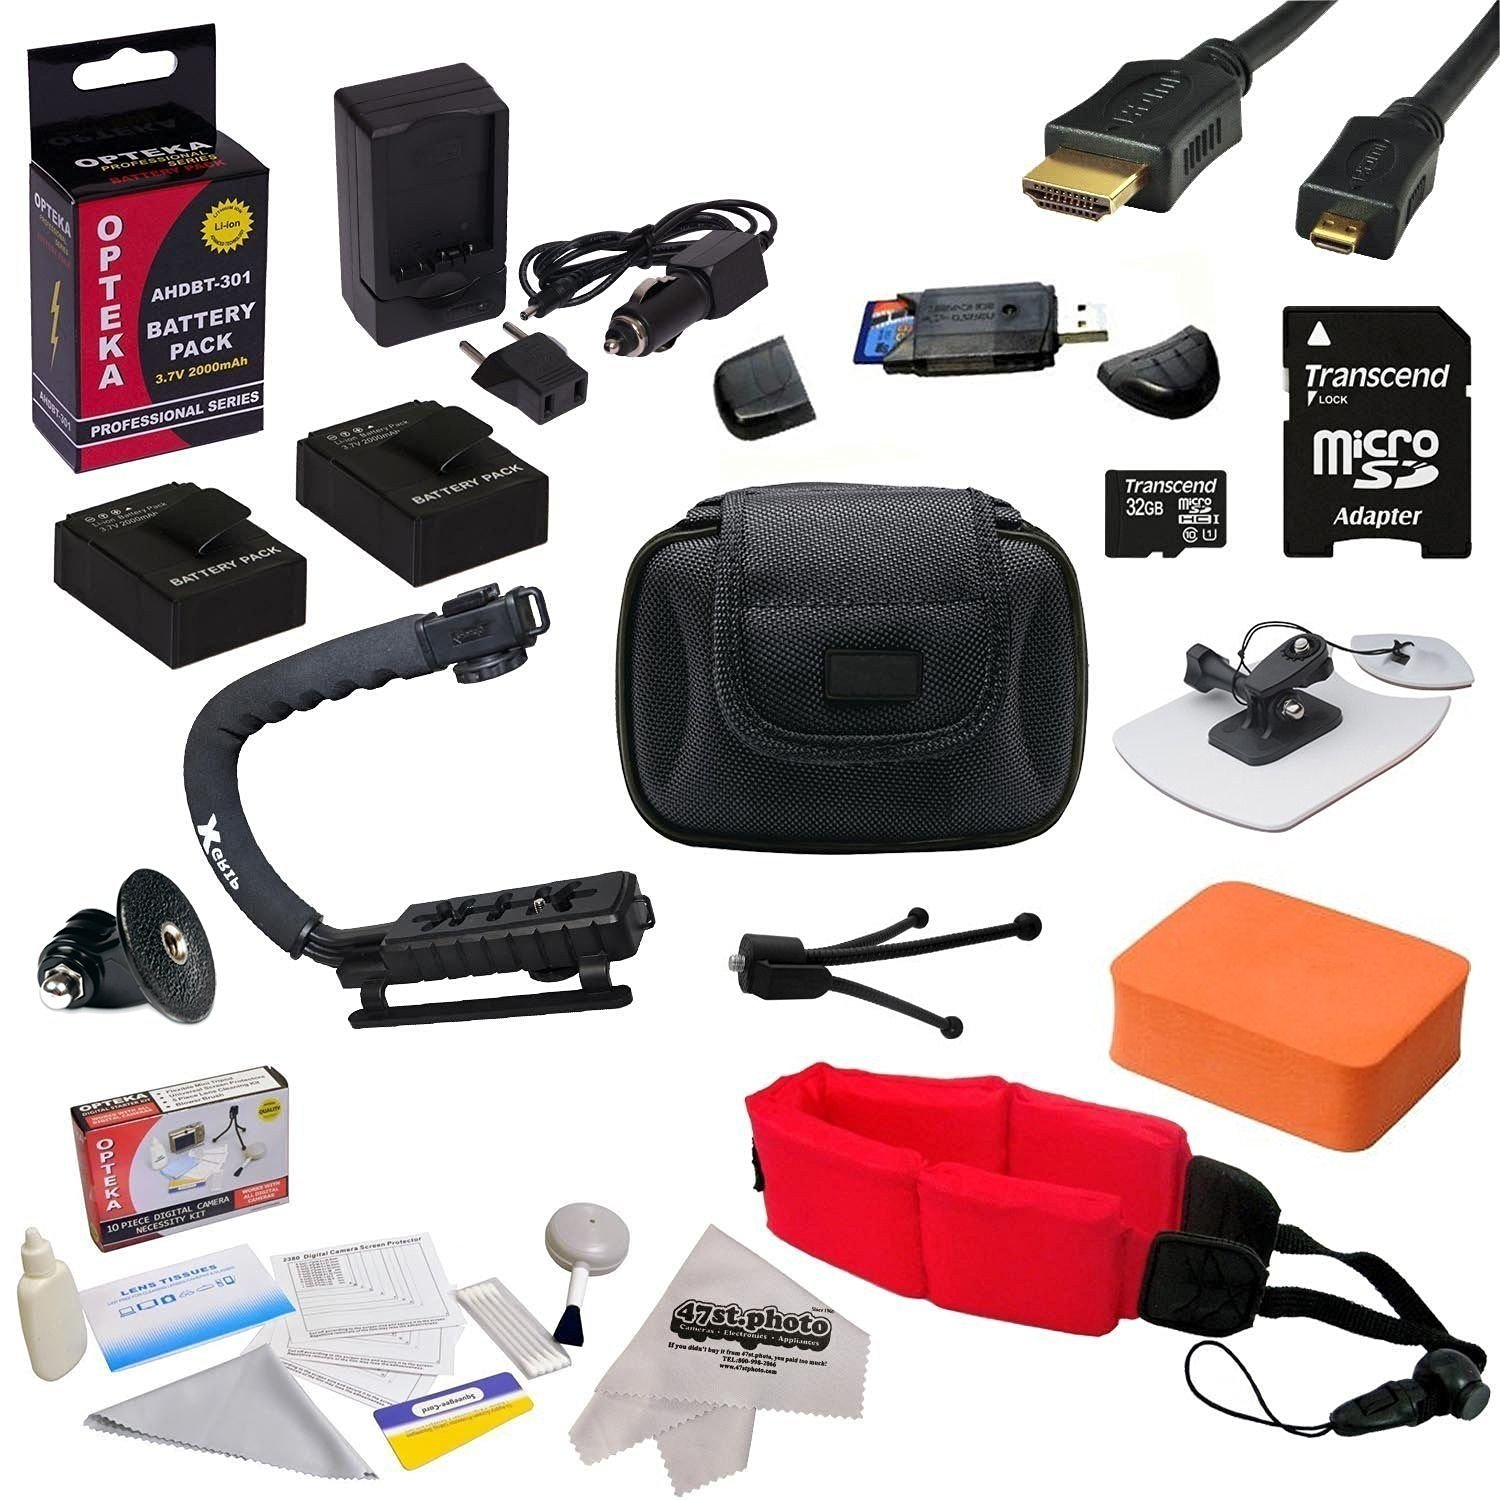 """All Sport """"Surf Edition"""" Accessory Kit For the GoPro HERO3+ Black Edition, HERO3+ Silver Edition, HERO3 Silver Edition, Black Edition, White Edition Cameras - Kit Includes 32GB Micro Sd Memory Card + (2) Extended Life 2000MAH AHDBT-301 Batteries + AC/DC Battery Charger + HDMI to Micro HDMI Cable +"""